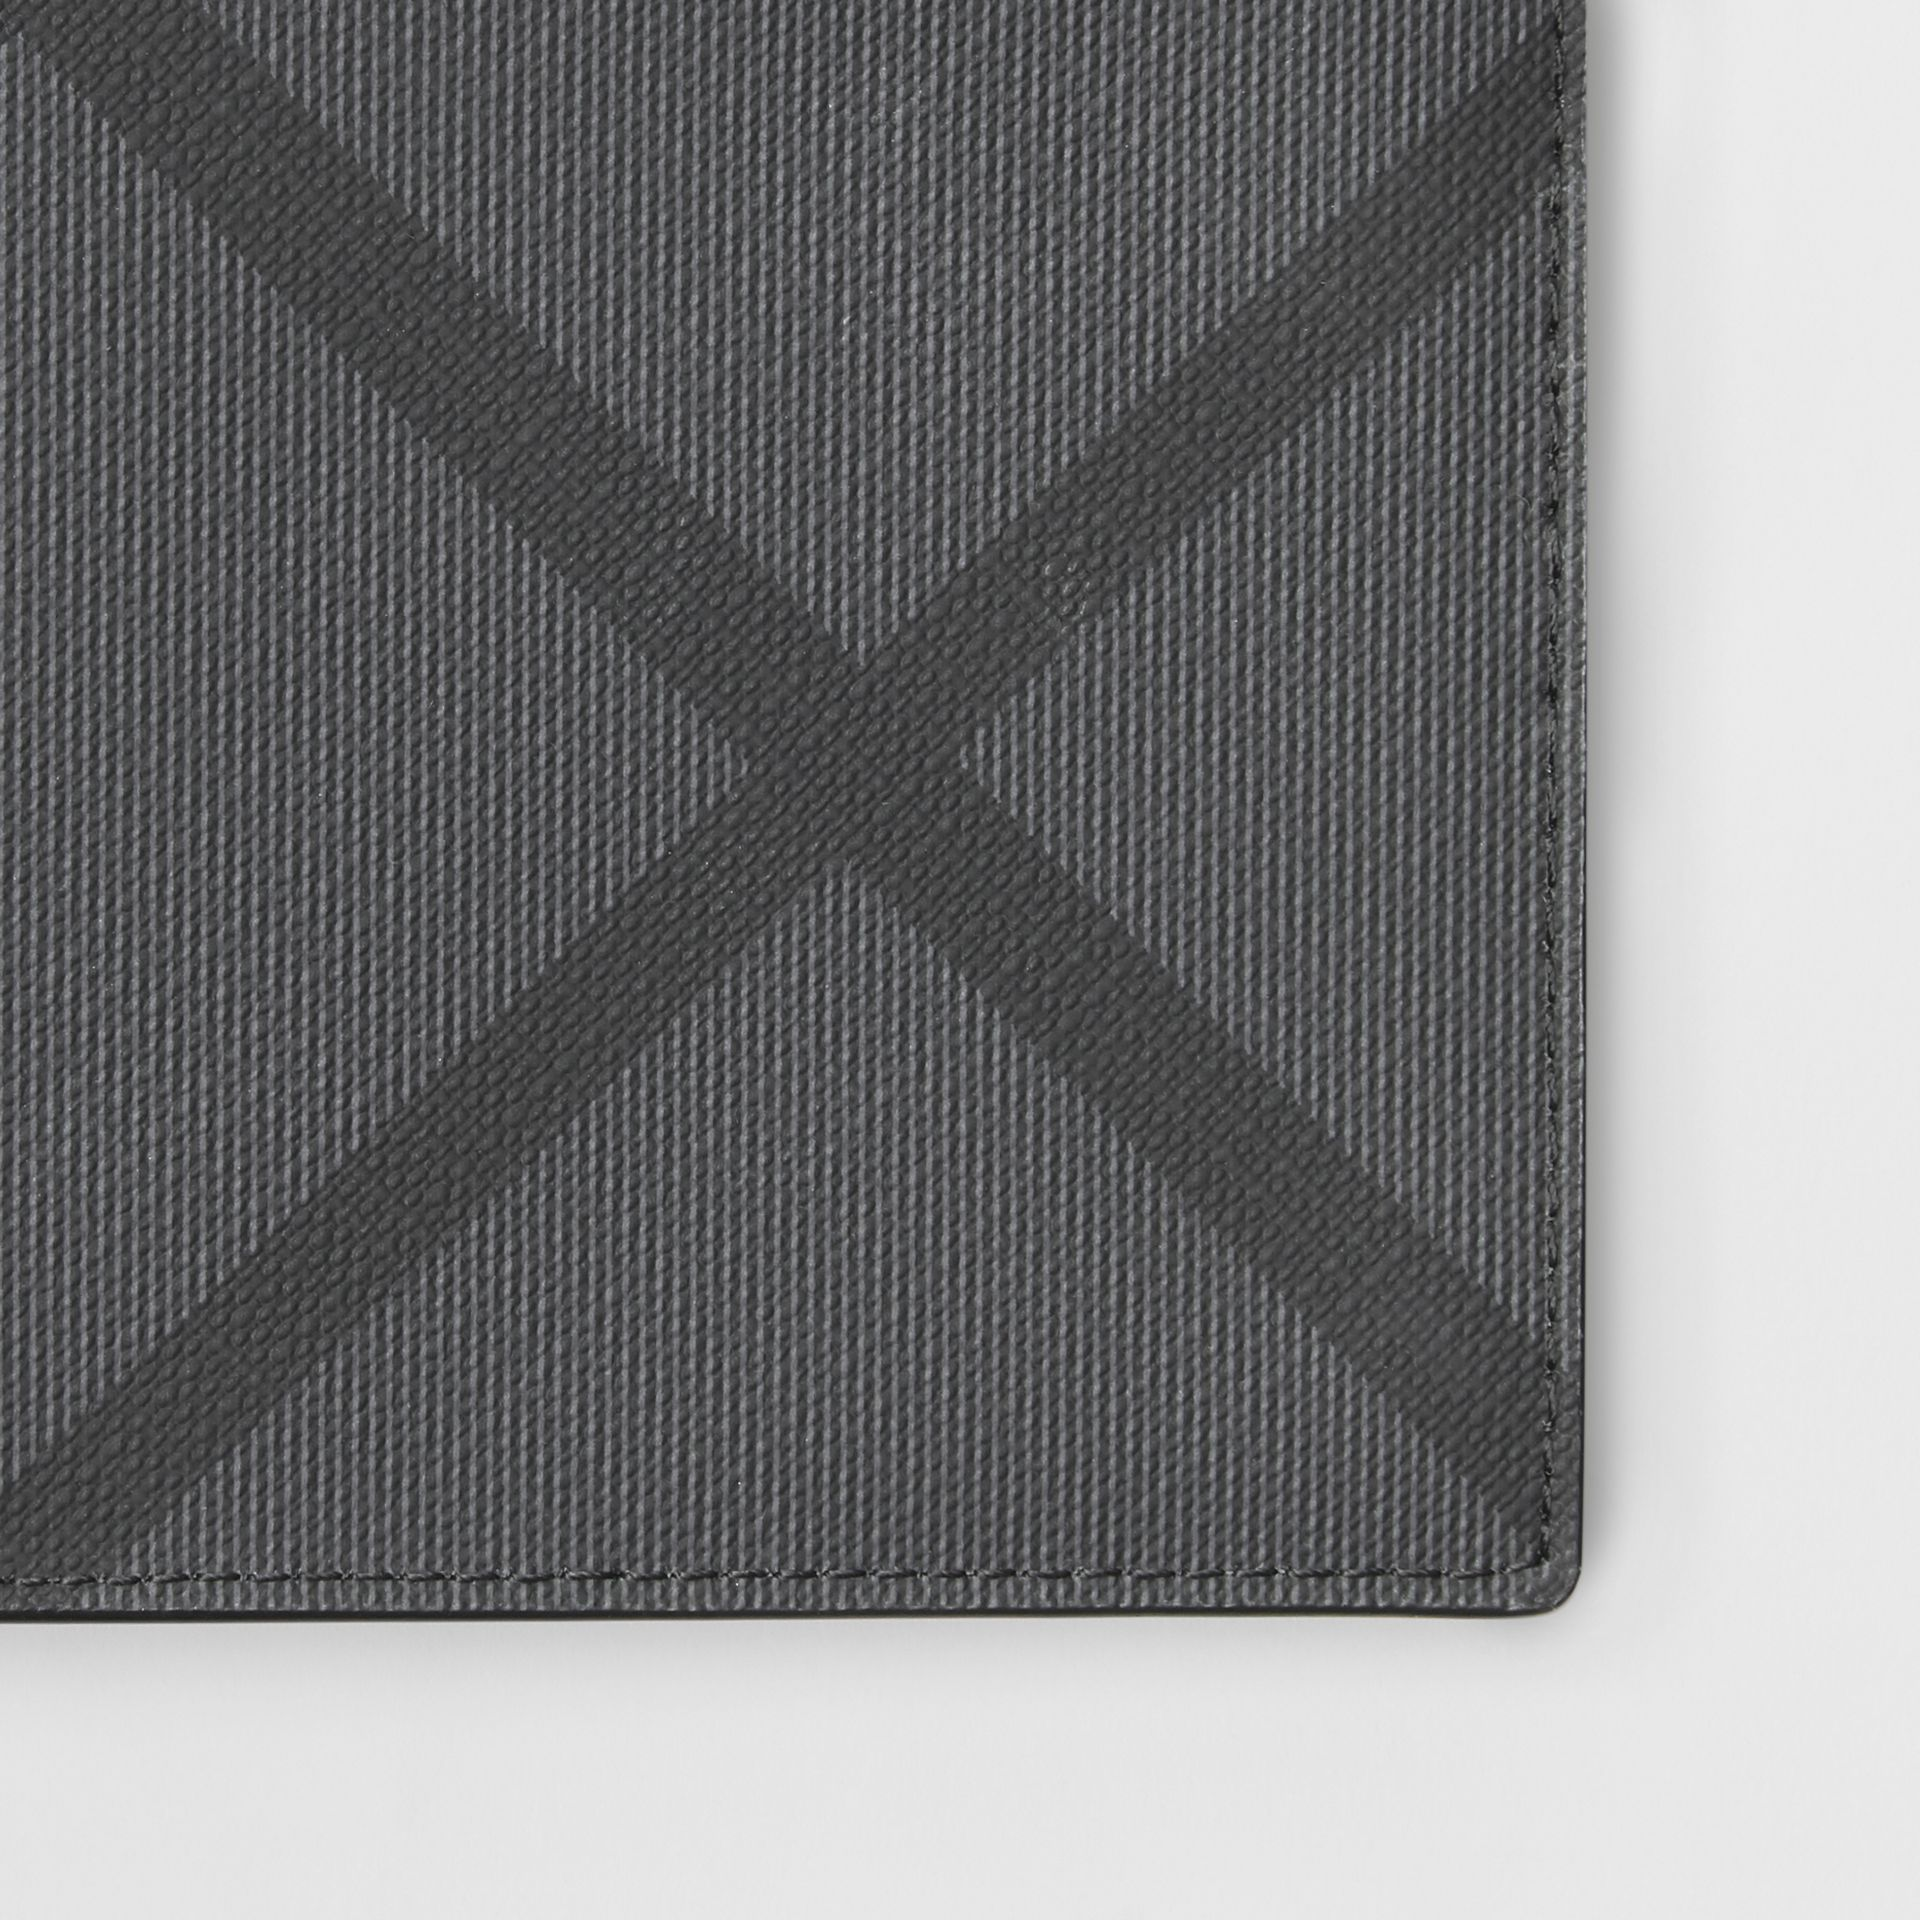 London Check ID Wallet in Charcoal/black - Men | Burberry United Kingdom - gallery image 1